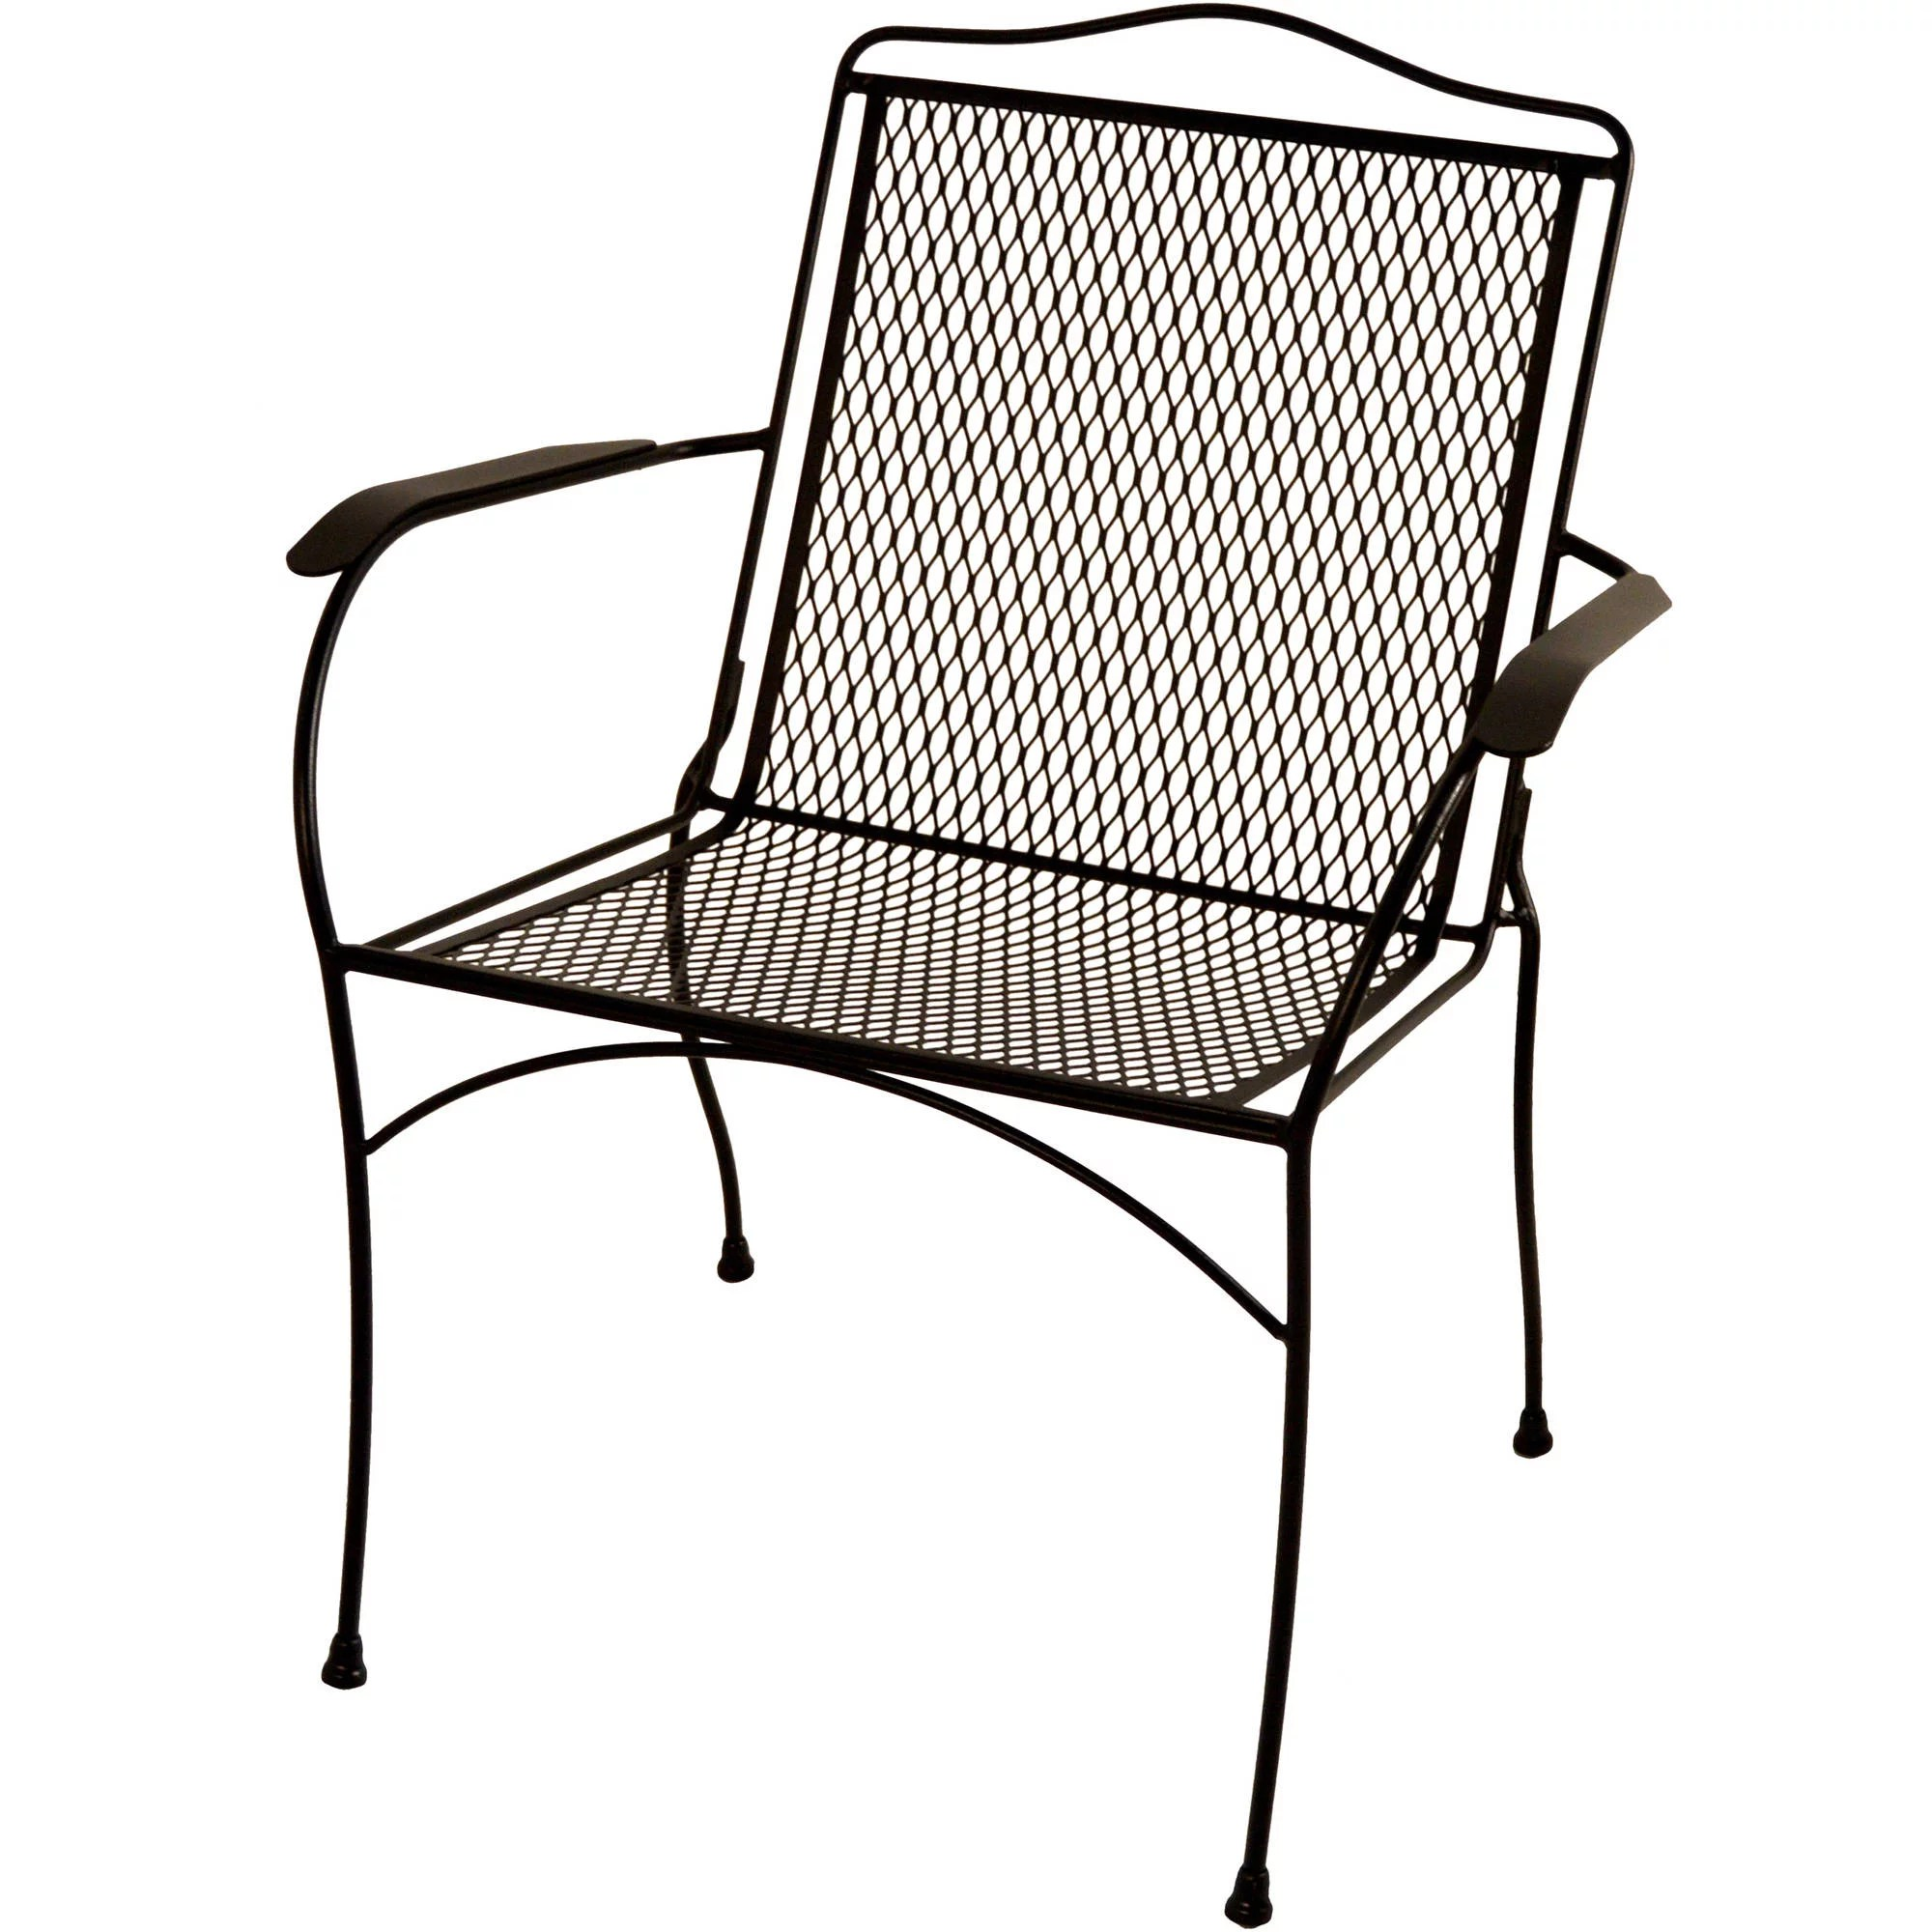 wrought iron chair aqua adirondack chairs arlington house sturdy stack charcoal walmart